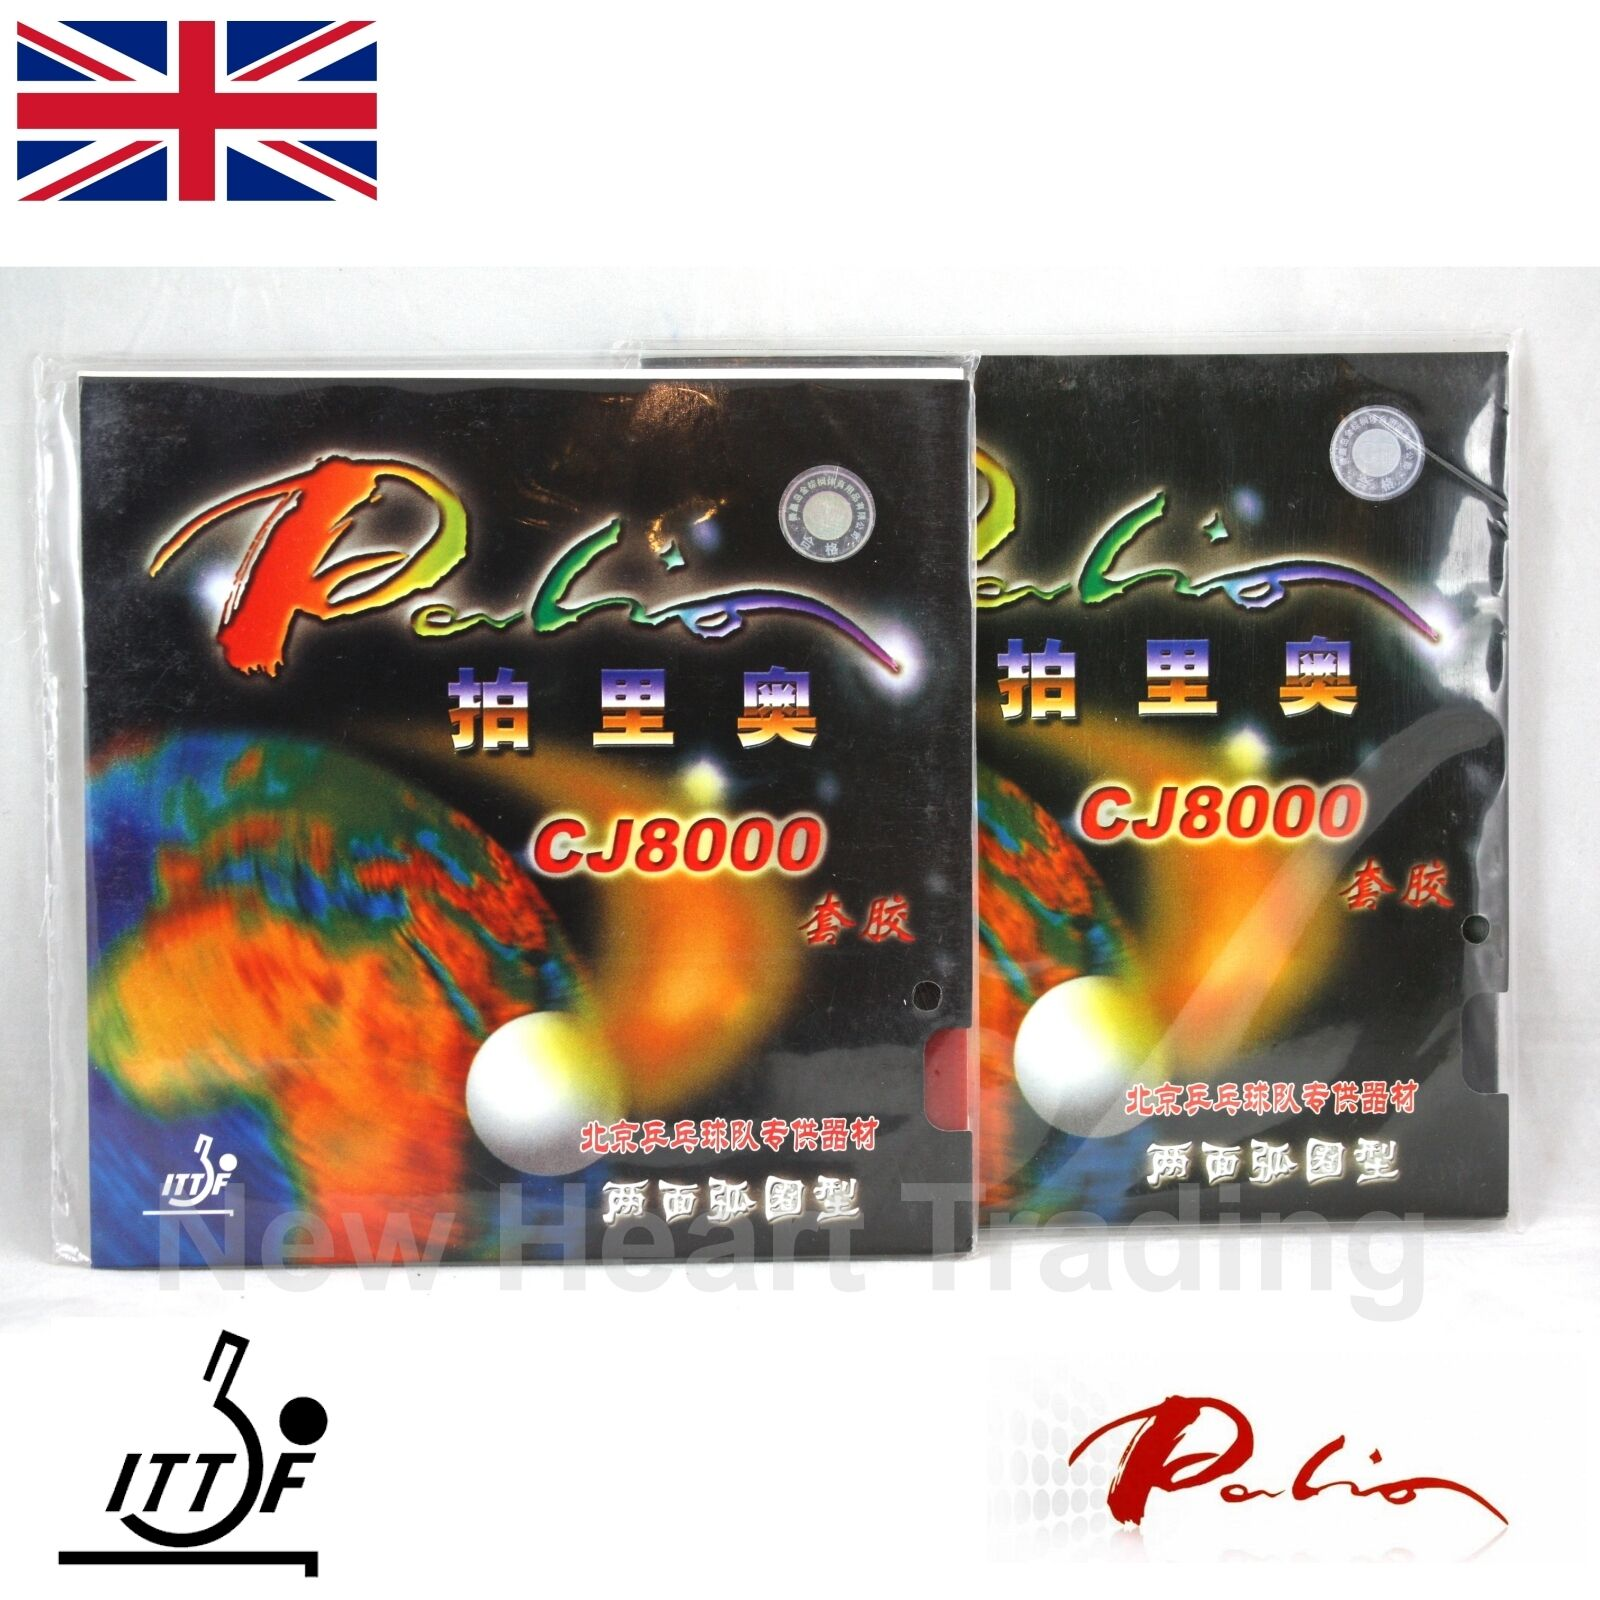 2 x Palio CJ8000 Two Side Loop Table Tennis Rubbers ITTF approved Pips in 36-38°